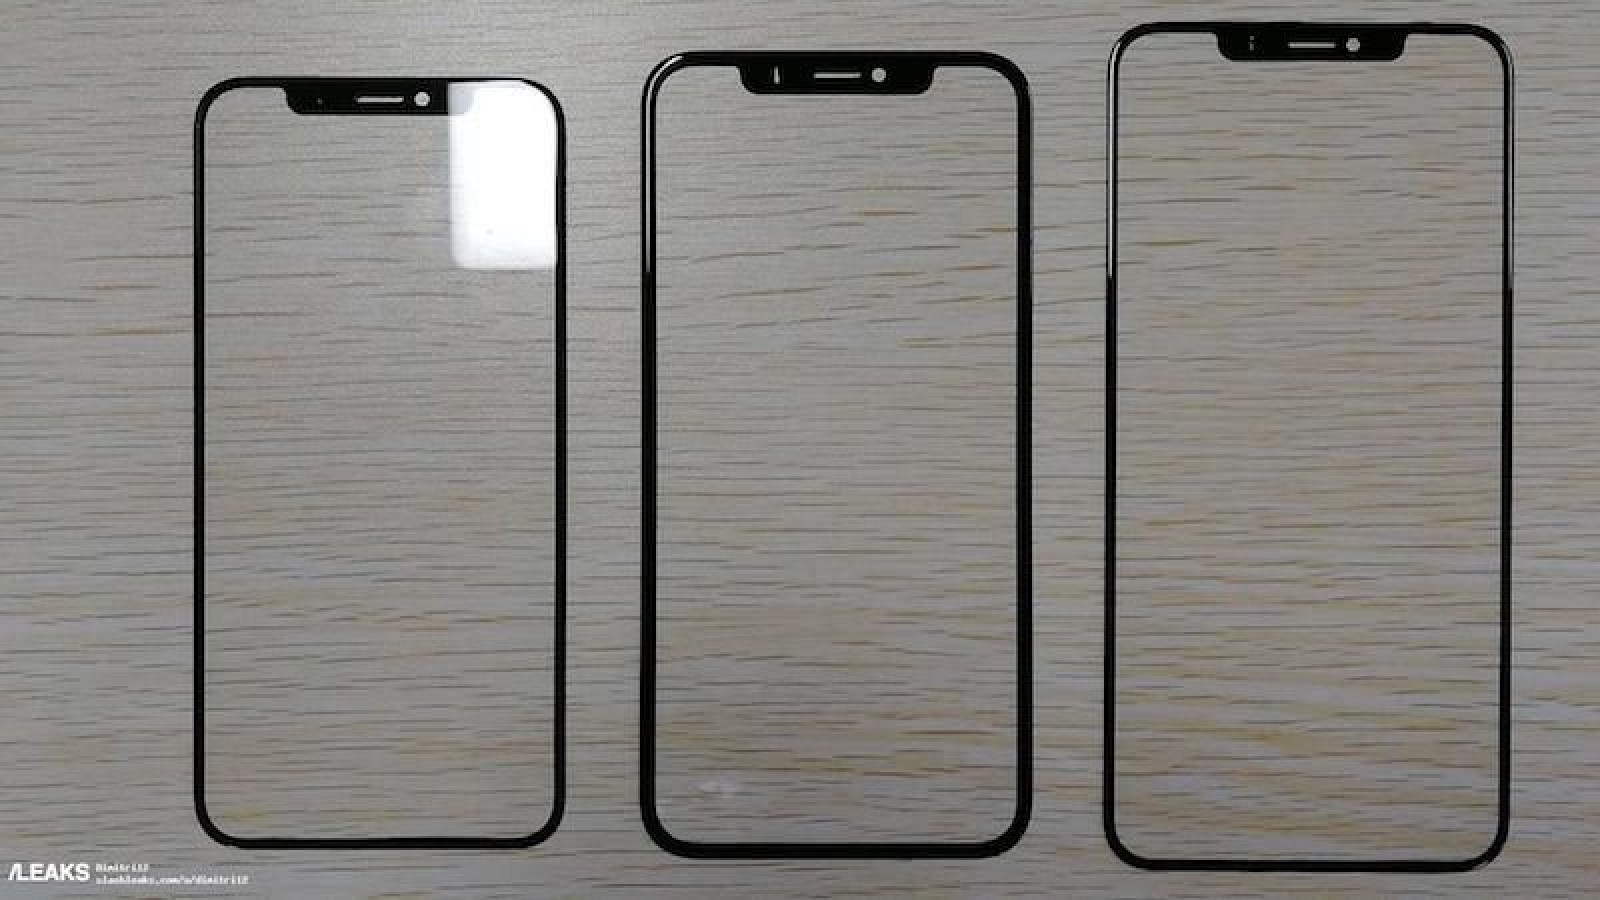 Front Glass Panels for 2018 iPhones Appear to Leak, Show Thicker Bezels on 6.1-Inch LCD Model